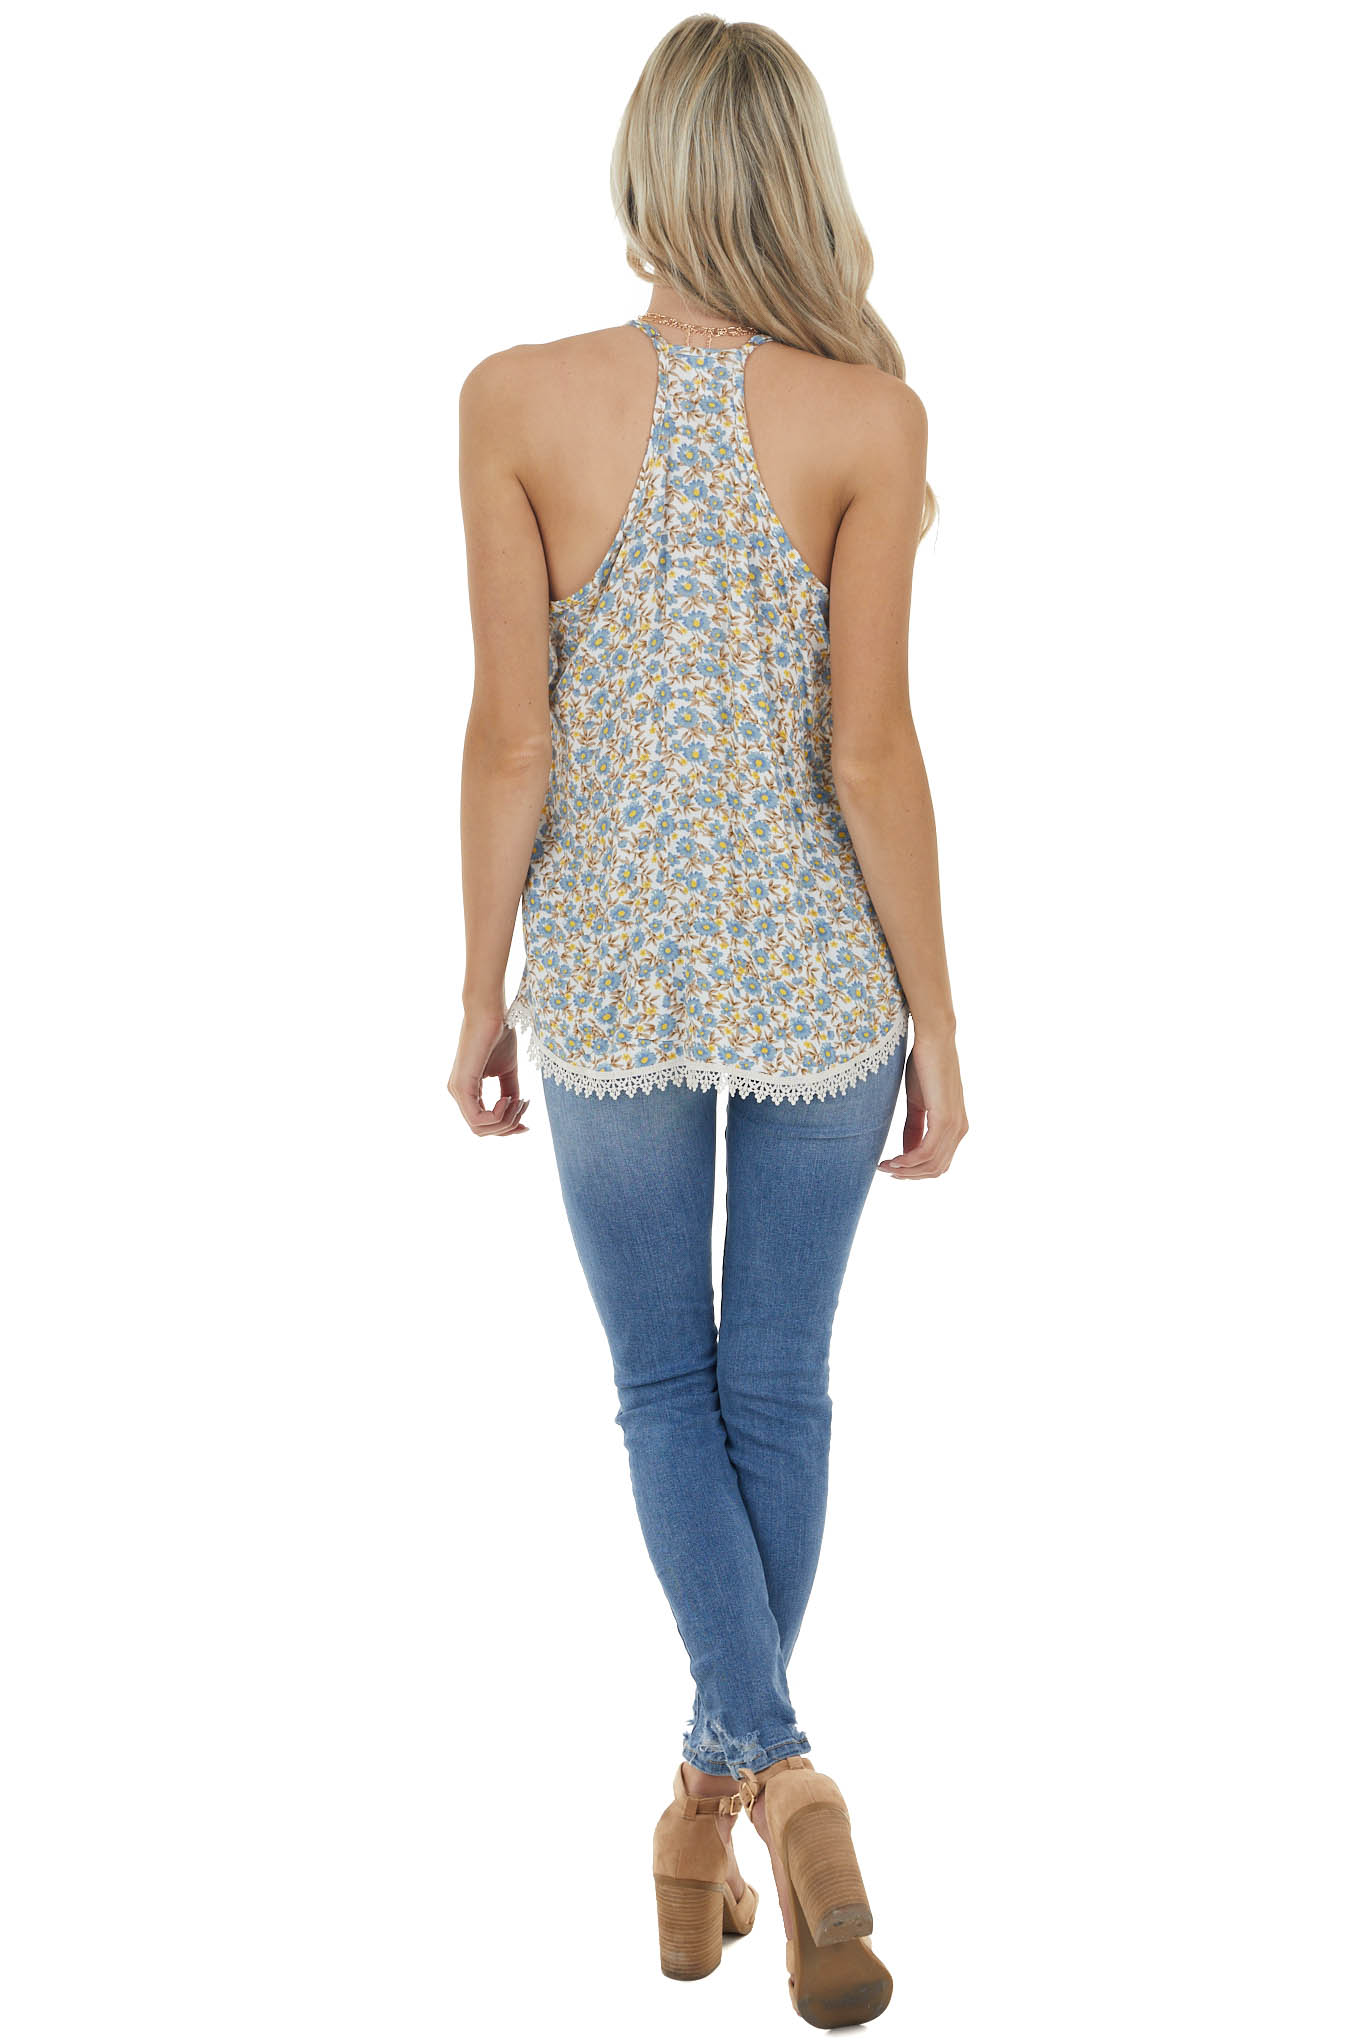 Ivory Floral Print Sleeveless Woven Top with Crochet Lace